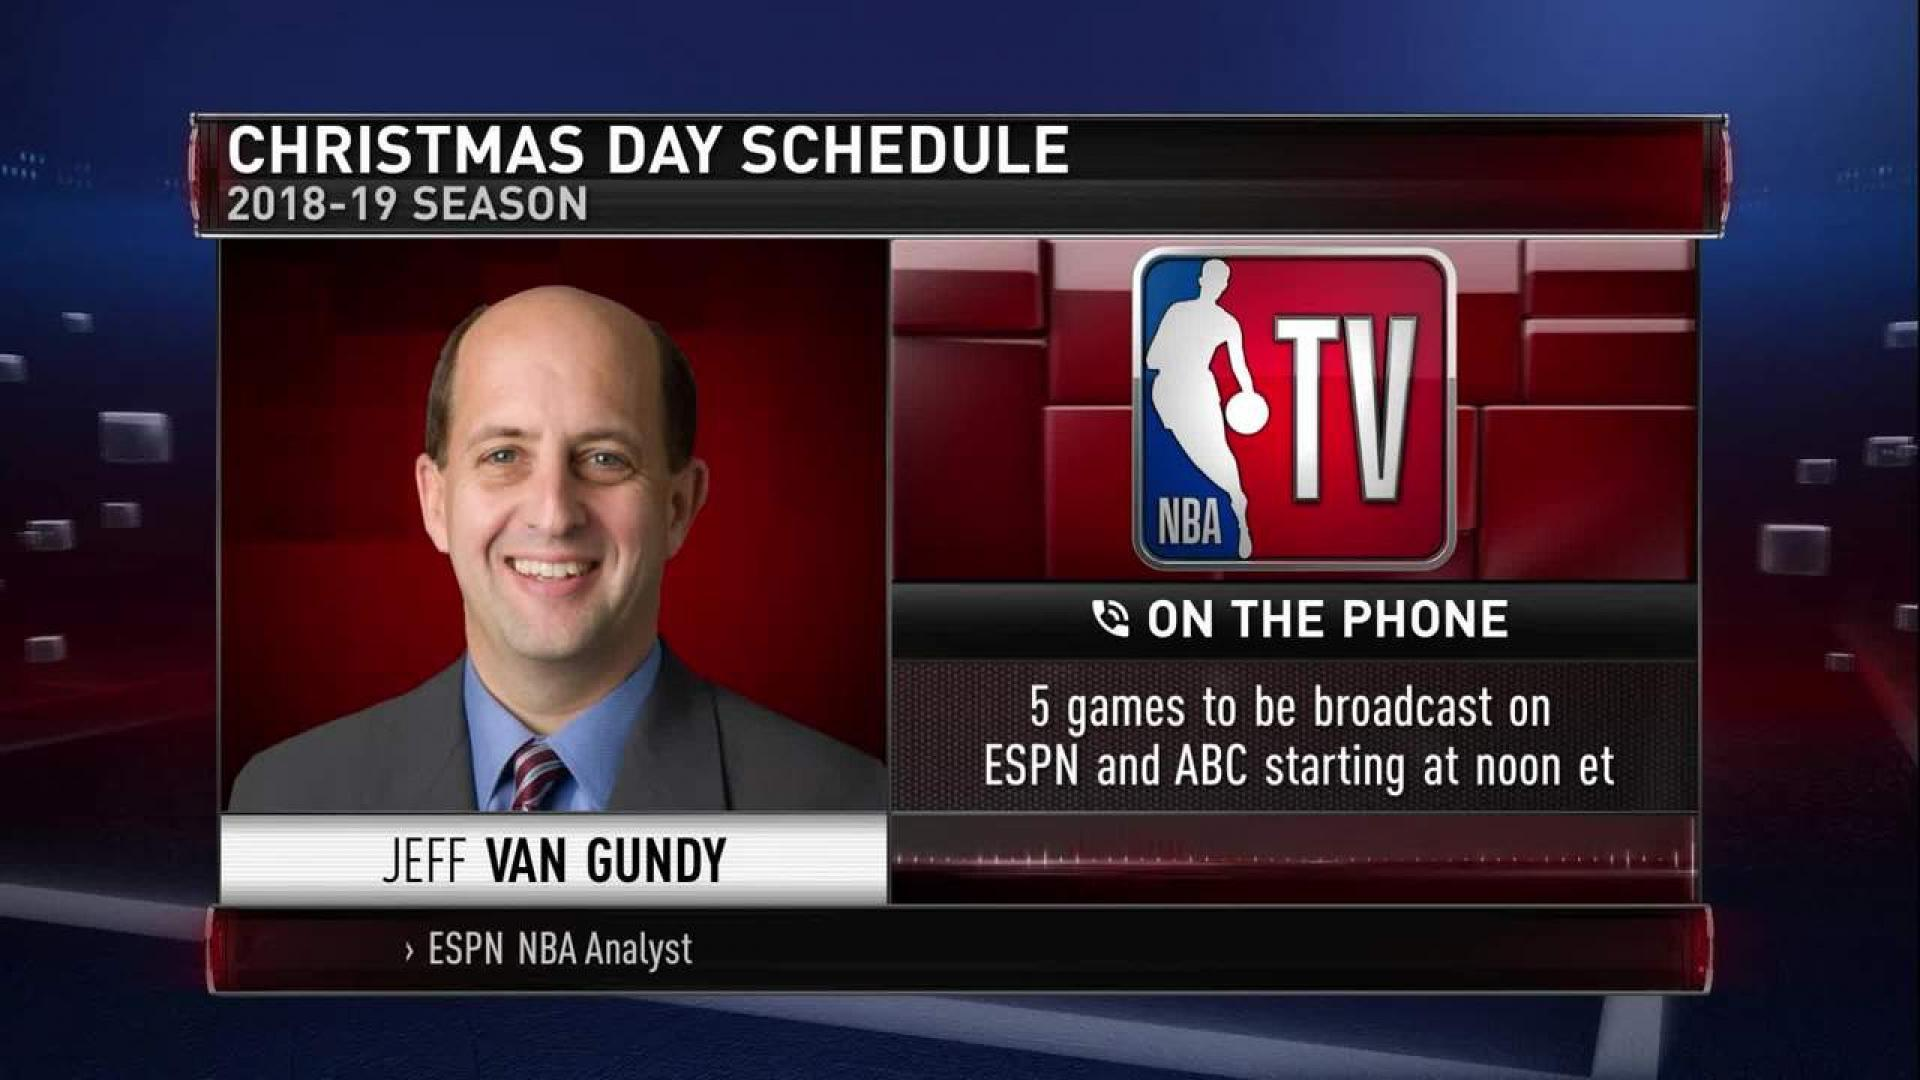 Nba Christmas Day Schedule.Jeff Van Gundy Talks Christmas Day Schedule Nba Com